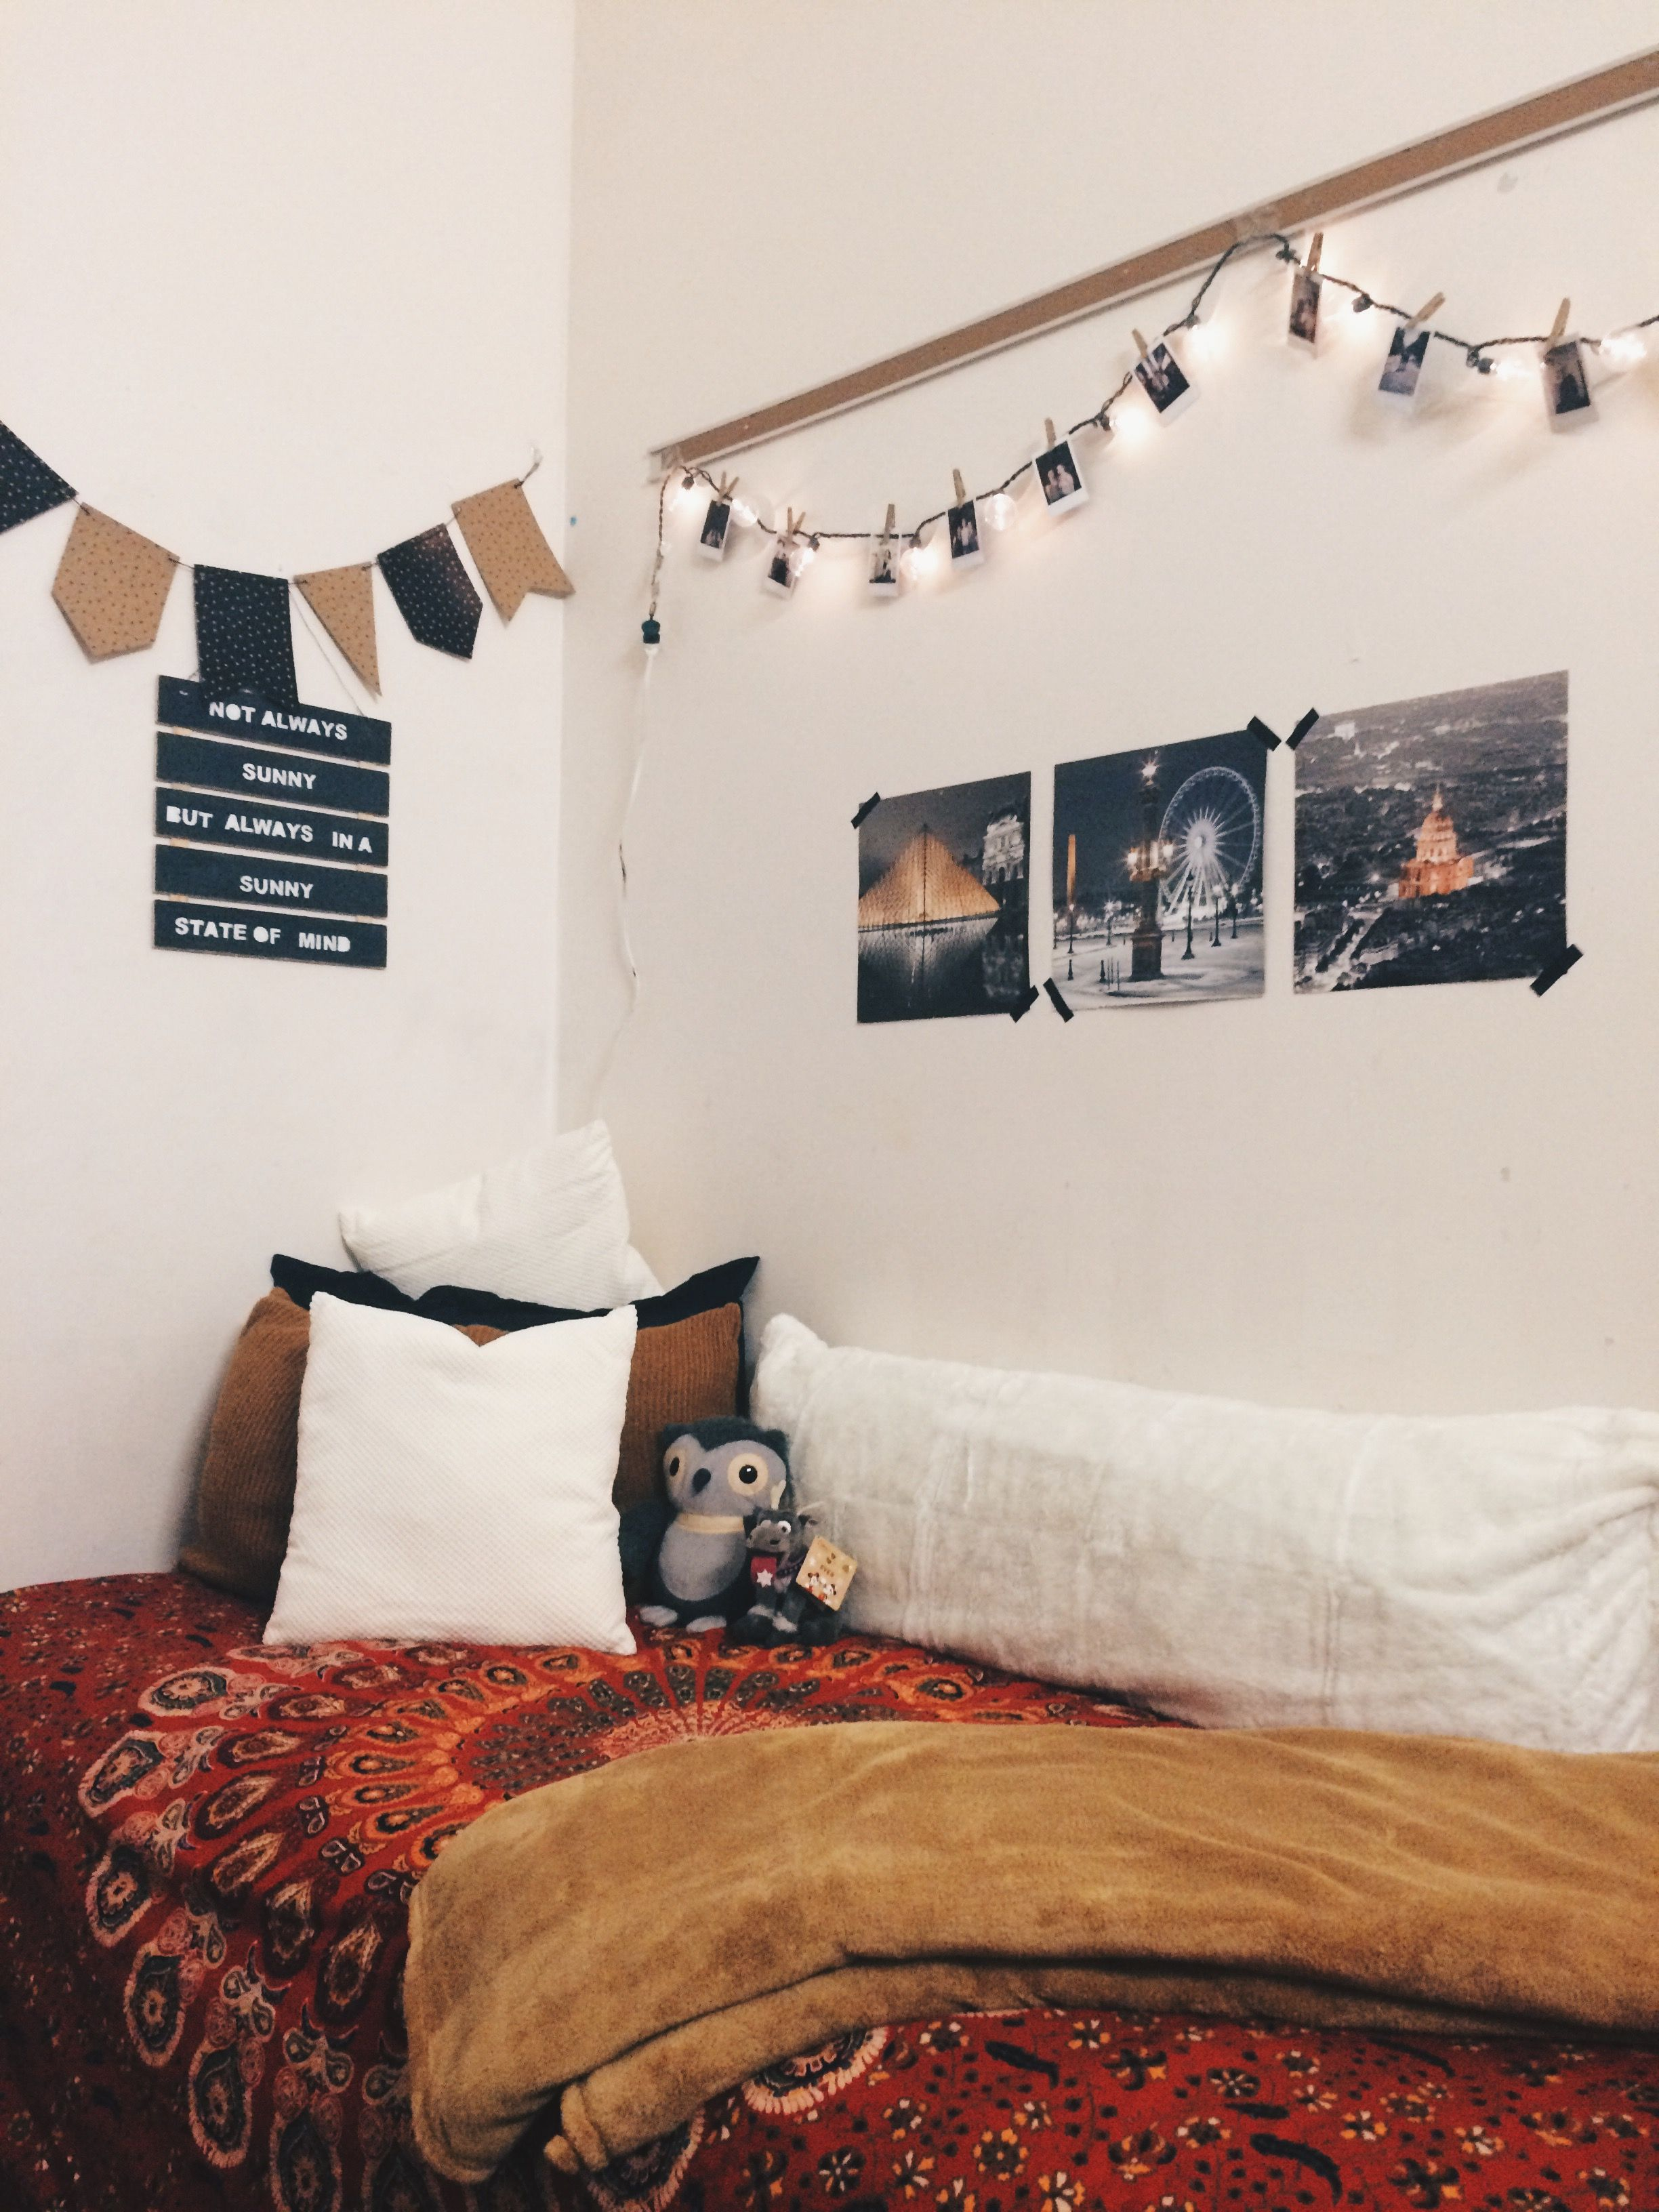 College Dorm Room Design: Dorm Room Ideas. Temple University.